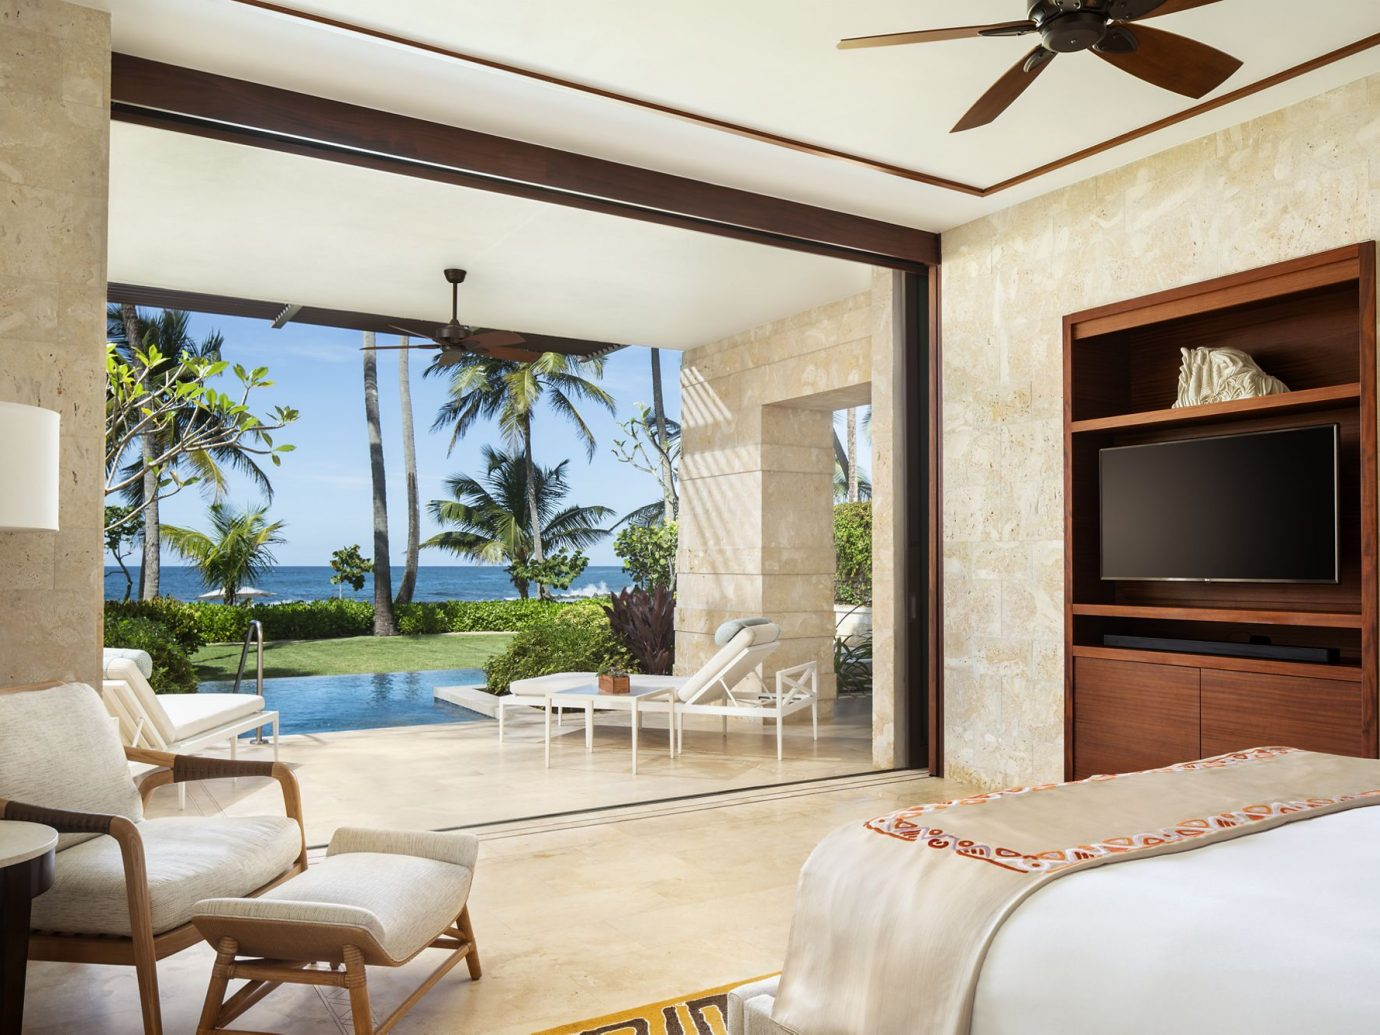 Bedroom of Dorado Beach in Puerto Rico